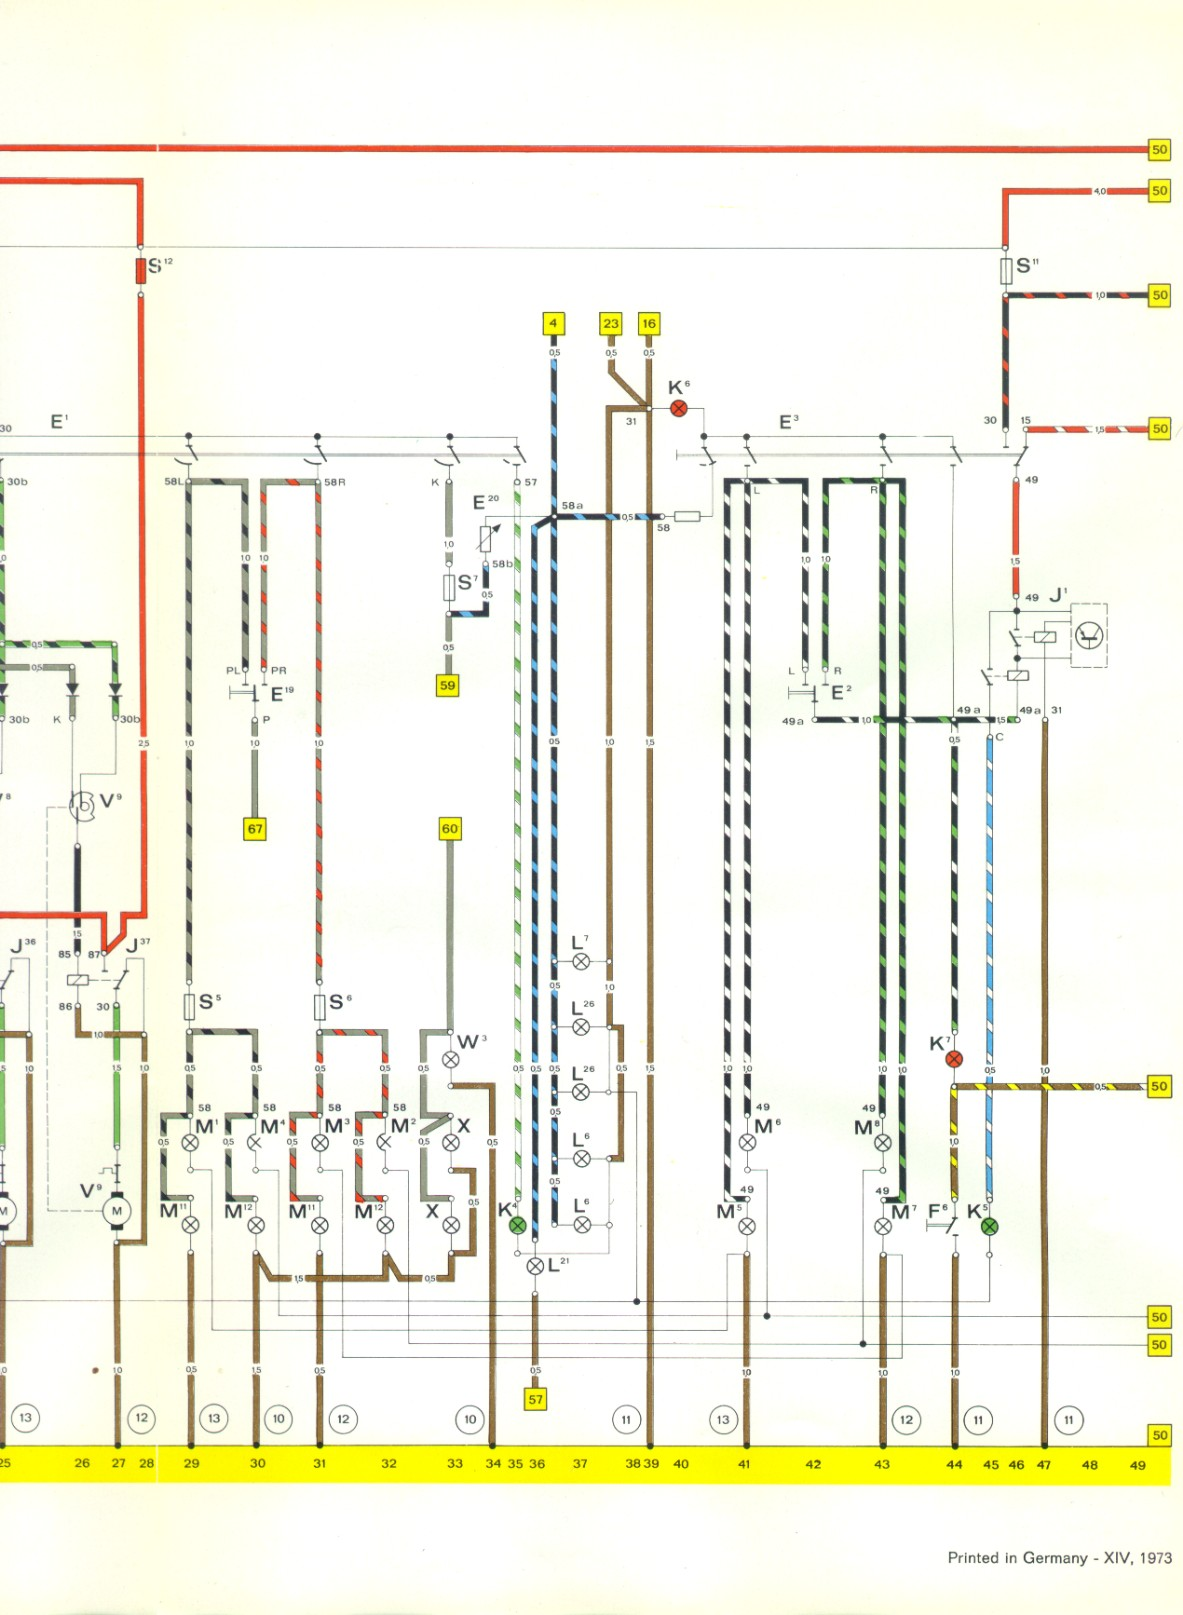 Fuse Box Diagram 1975 Porsche 914 Html Auto Engine And Parts 2011 04 01 Archive As Well Headlight Relay Wiring Moreover 1984 911